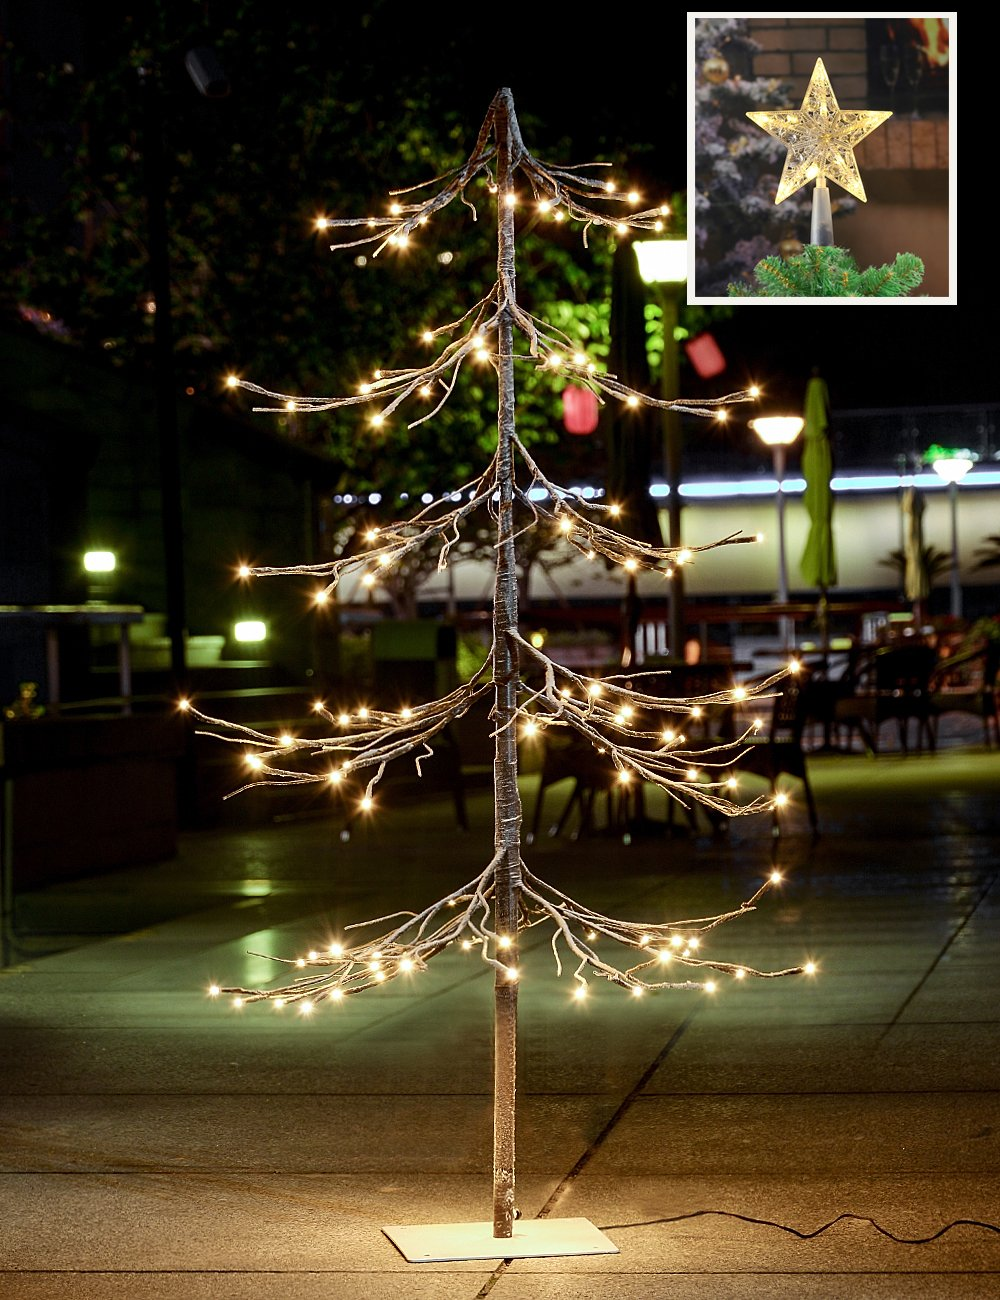 Lightshare NEW 4FT 112L LED Fir Snow Tree,+Free Gift:10L LED Star Treetop Decoration Light,Home/Festival/Party/Christmas,Indoor and Outdoor Use,Warm White